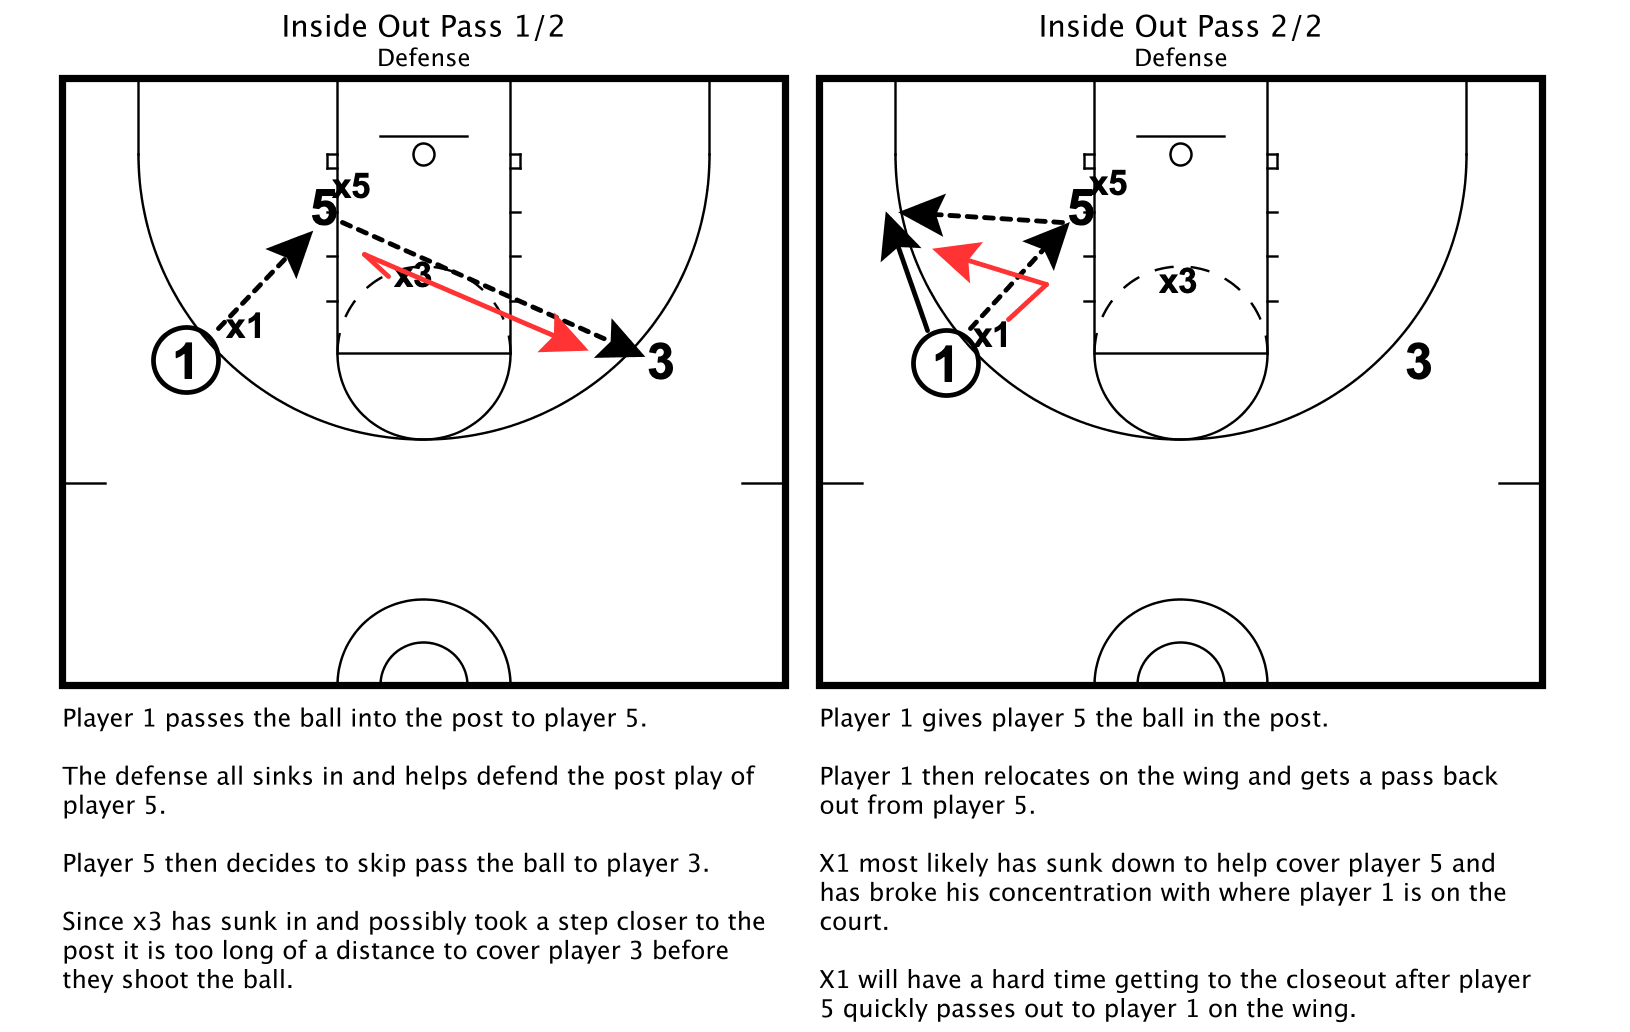 Inside Out Pass